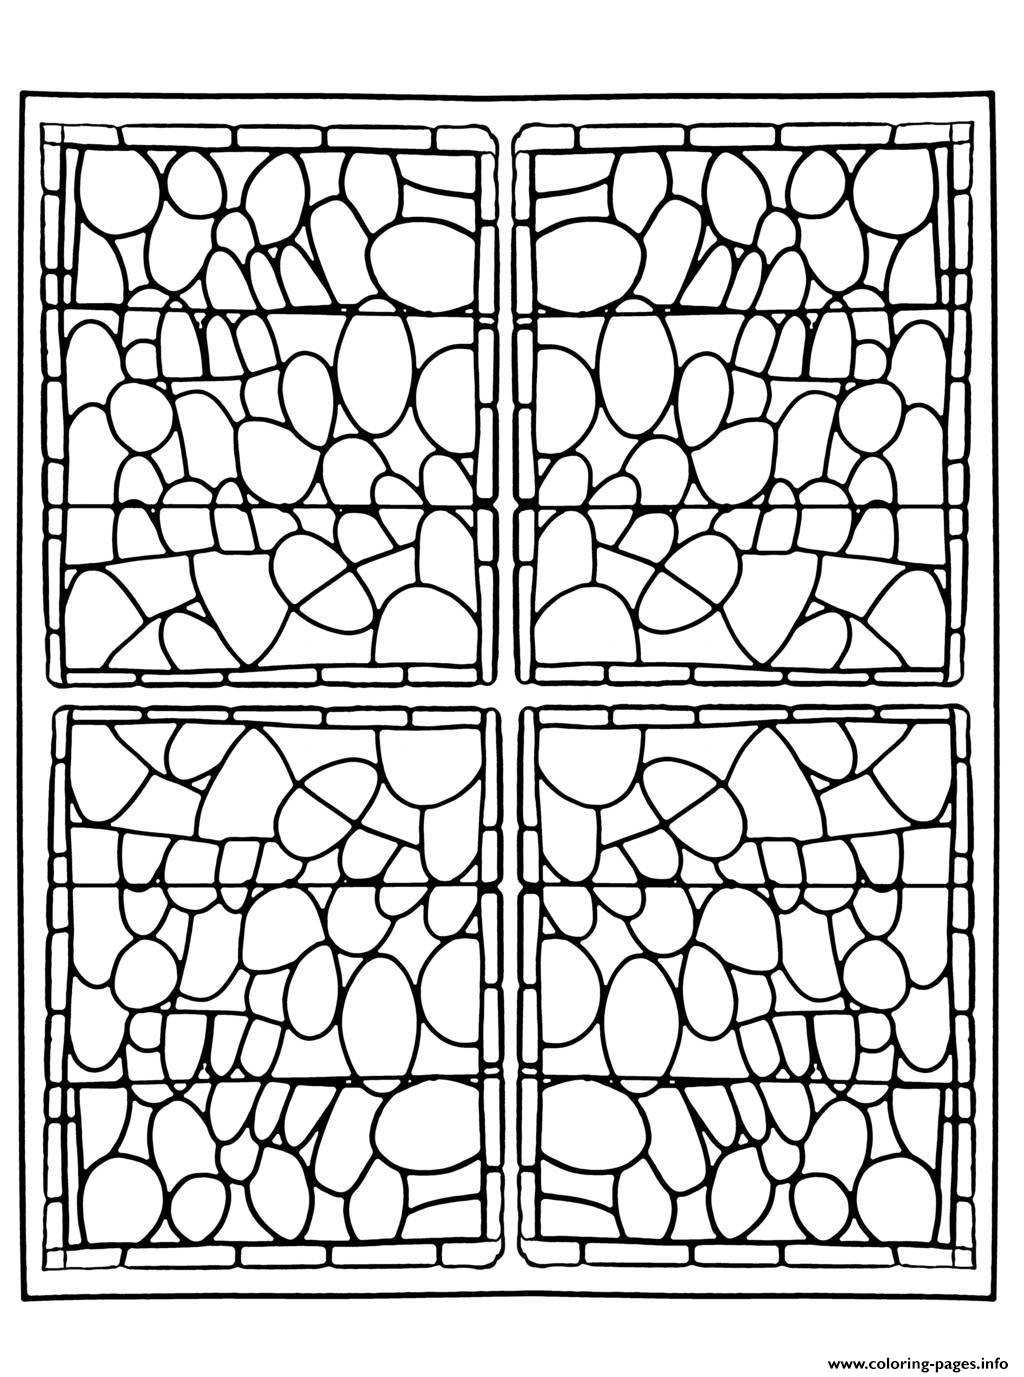 Adult Stained Glass Chapelle Prieure De Bethleem Nimes Version 3 coloring pages